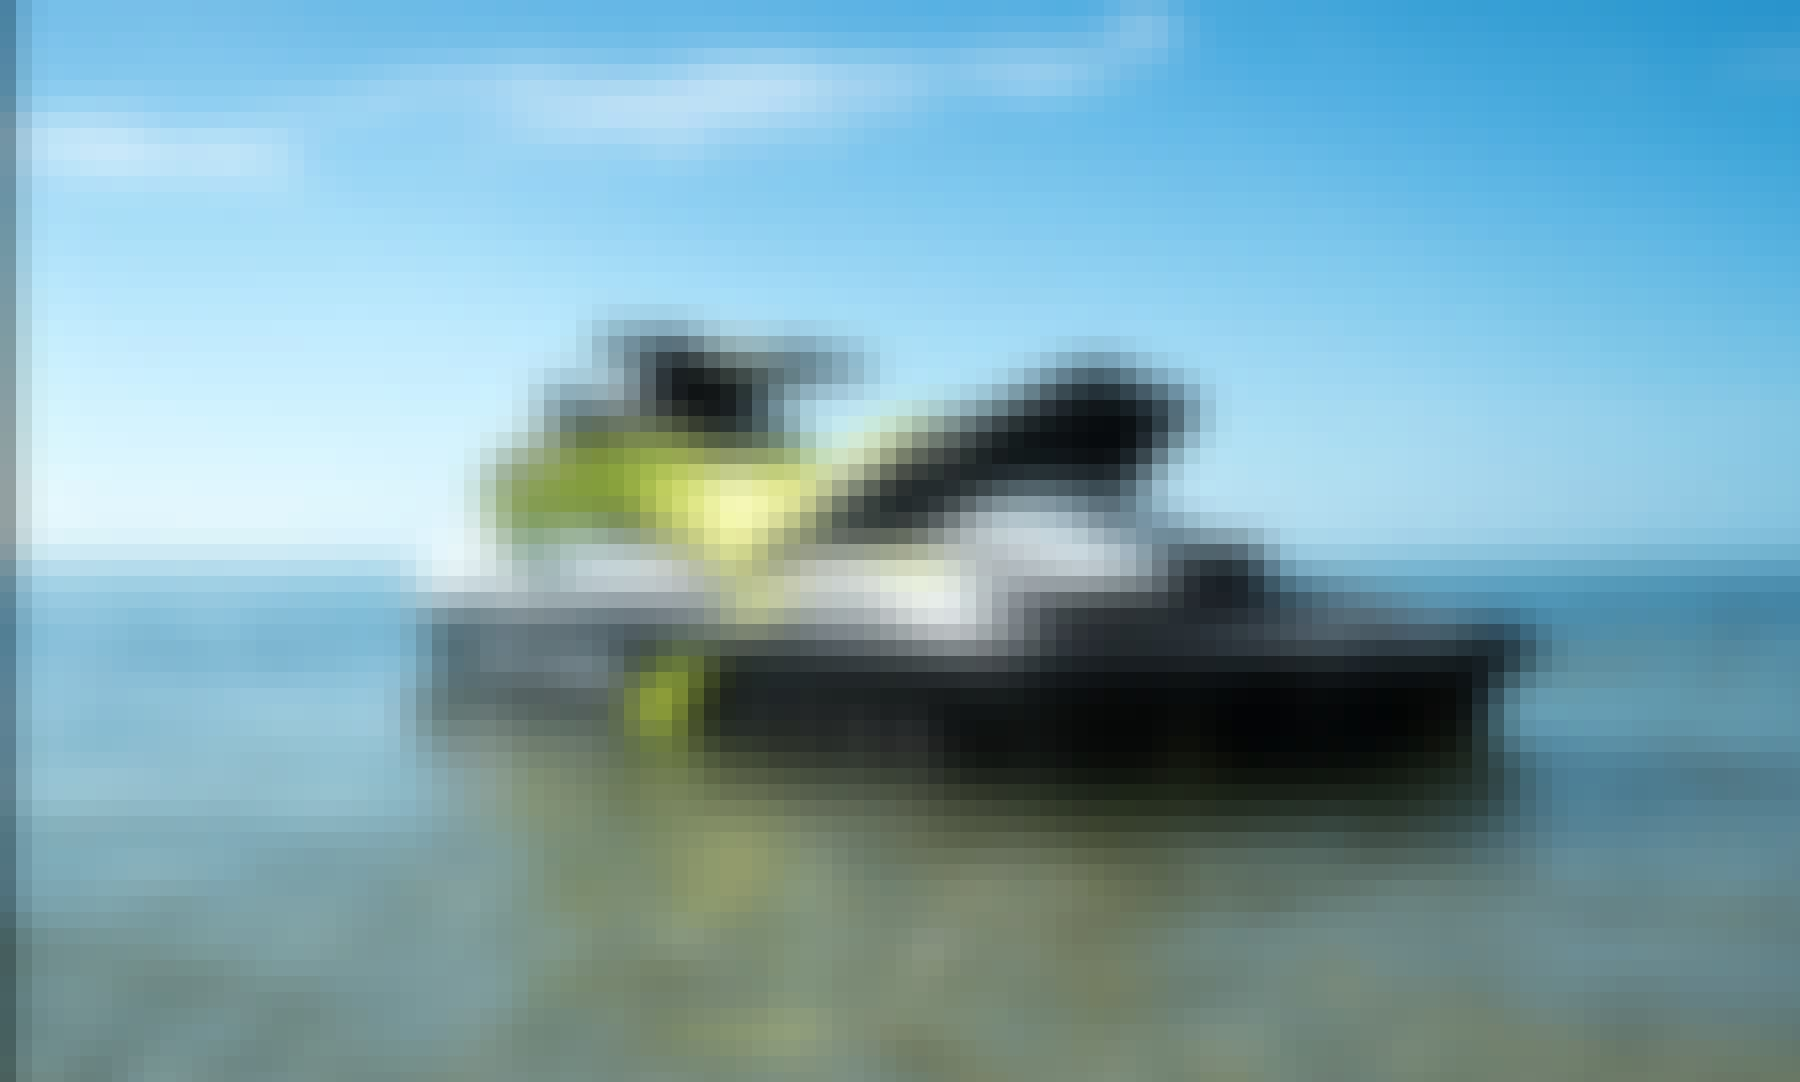 Seadoo GTI Jet Skis for More Exciting Beach Adventure in Cape Coral